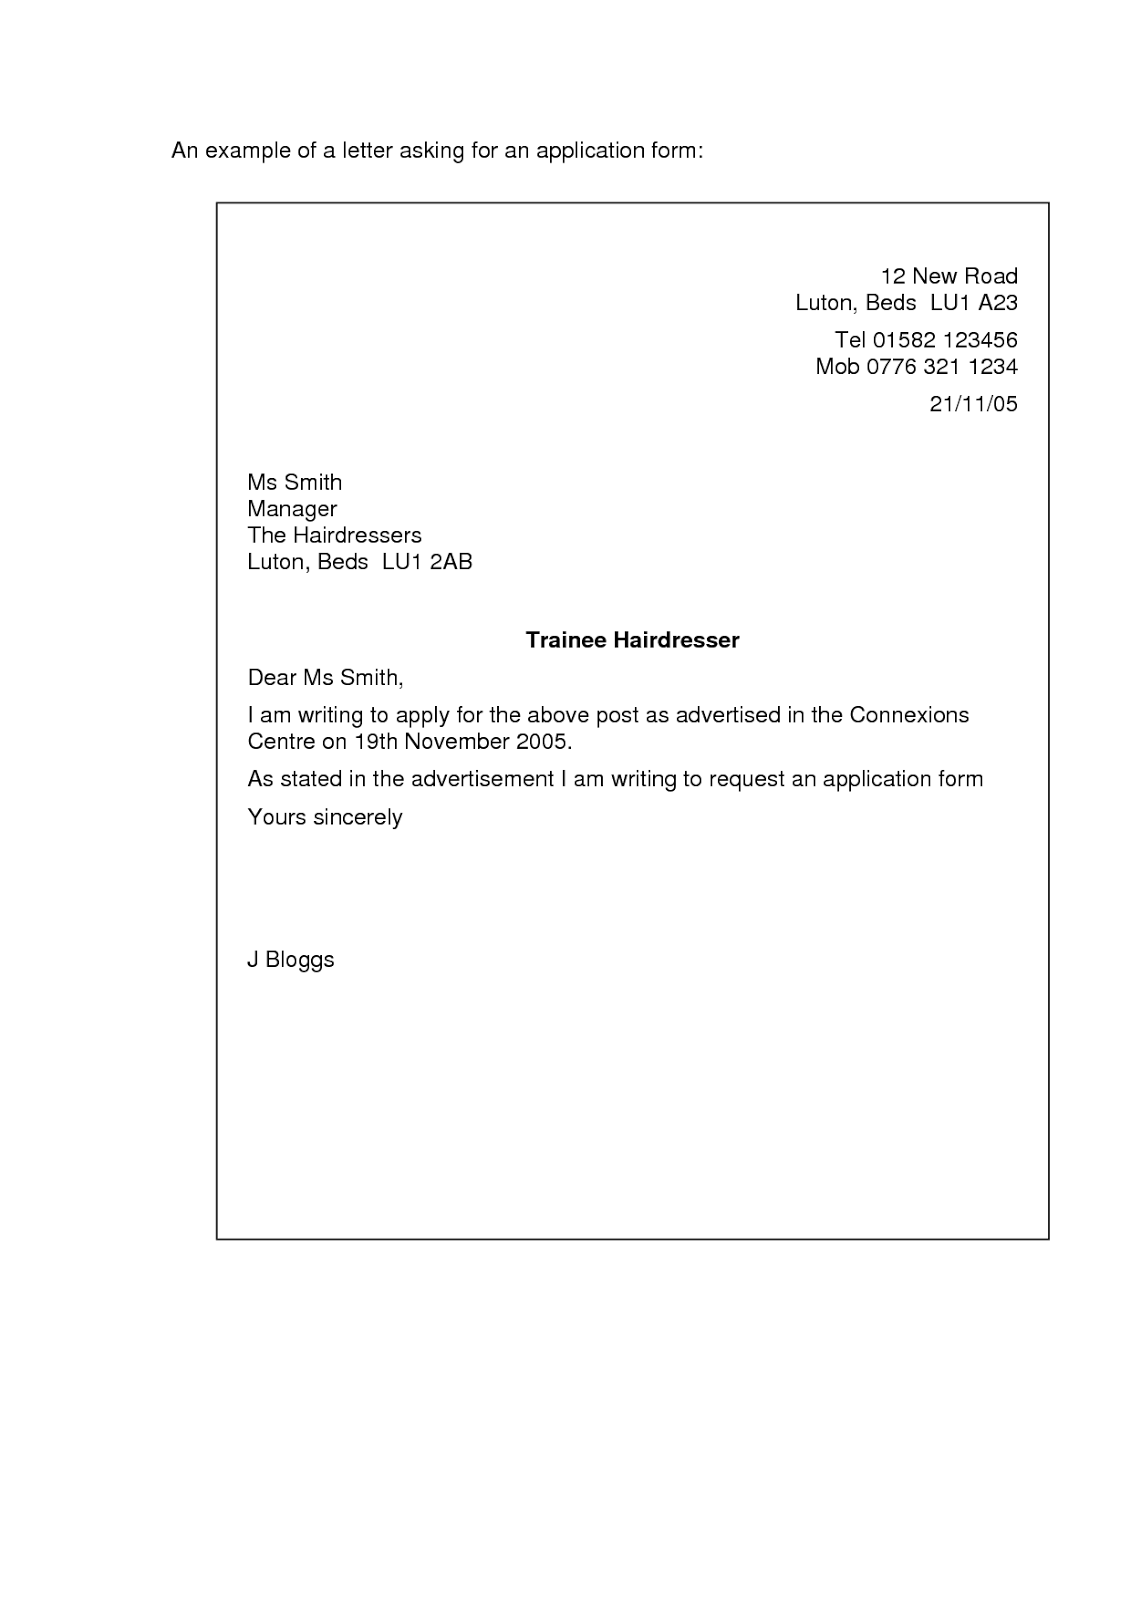 Job Application Cover Letter Examples  Letter    Cover